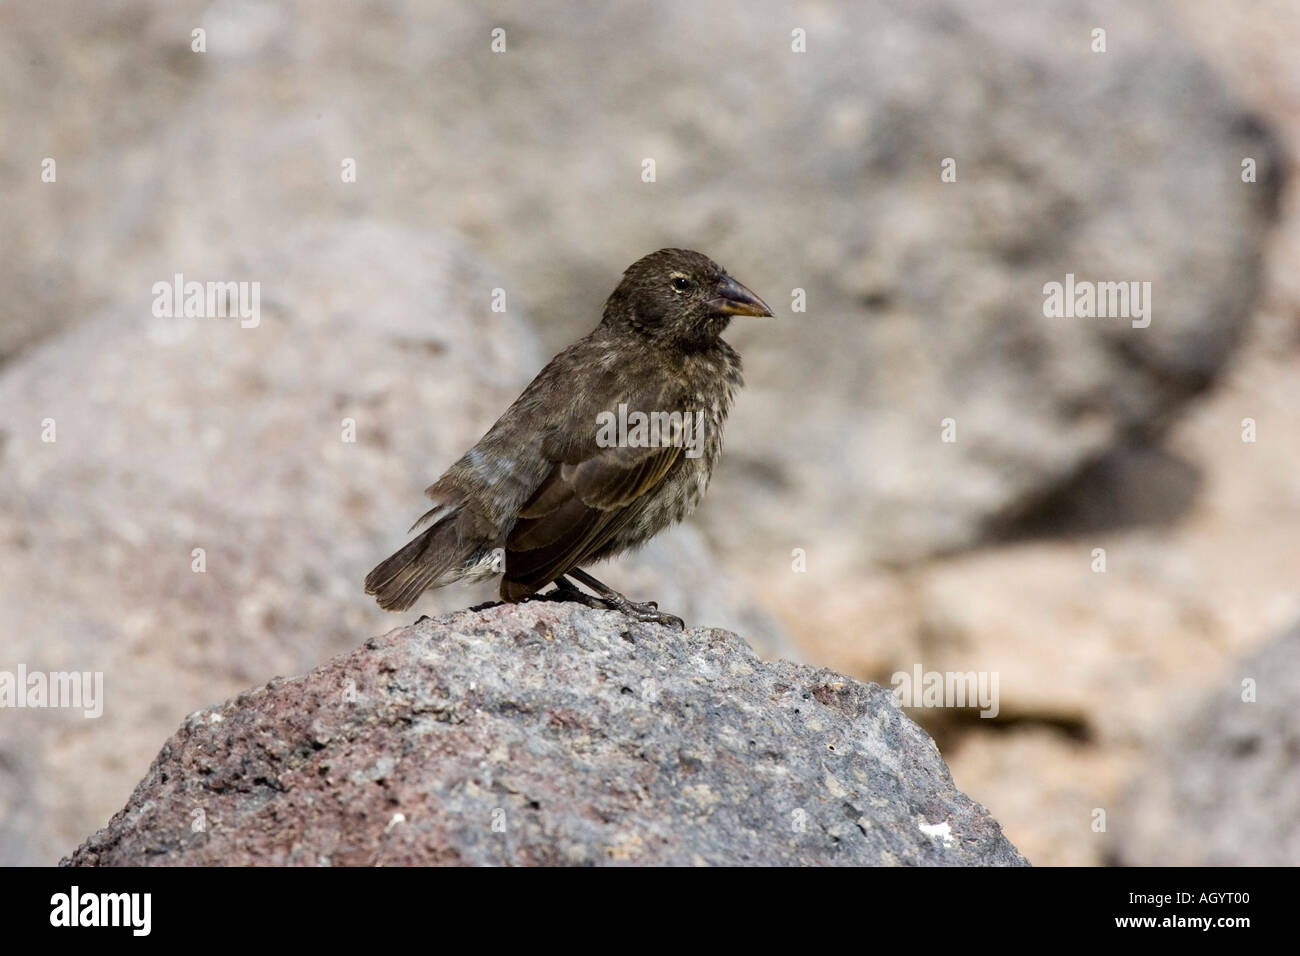 Cactus Ground Finch Geospiza scandens Opuntia echios Darwin s finches Galapagos Islands - Stock Image